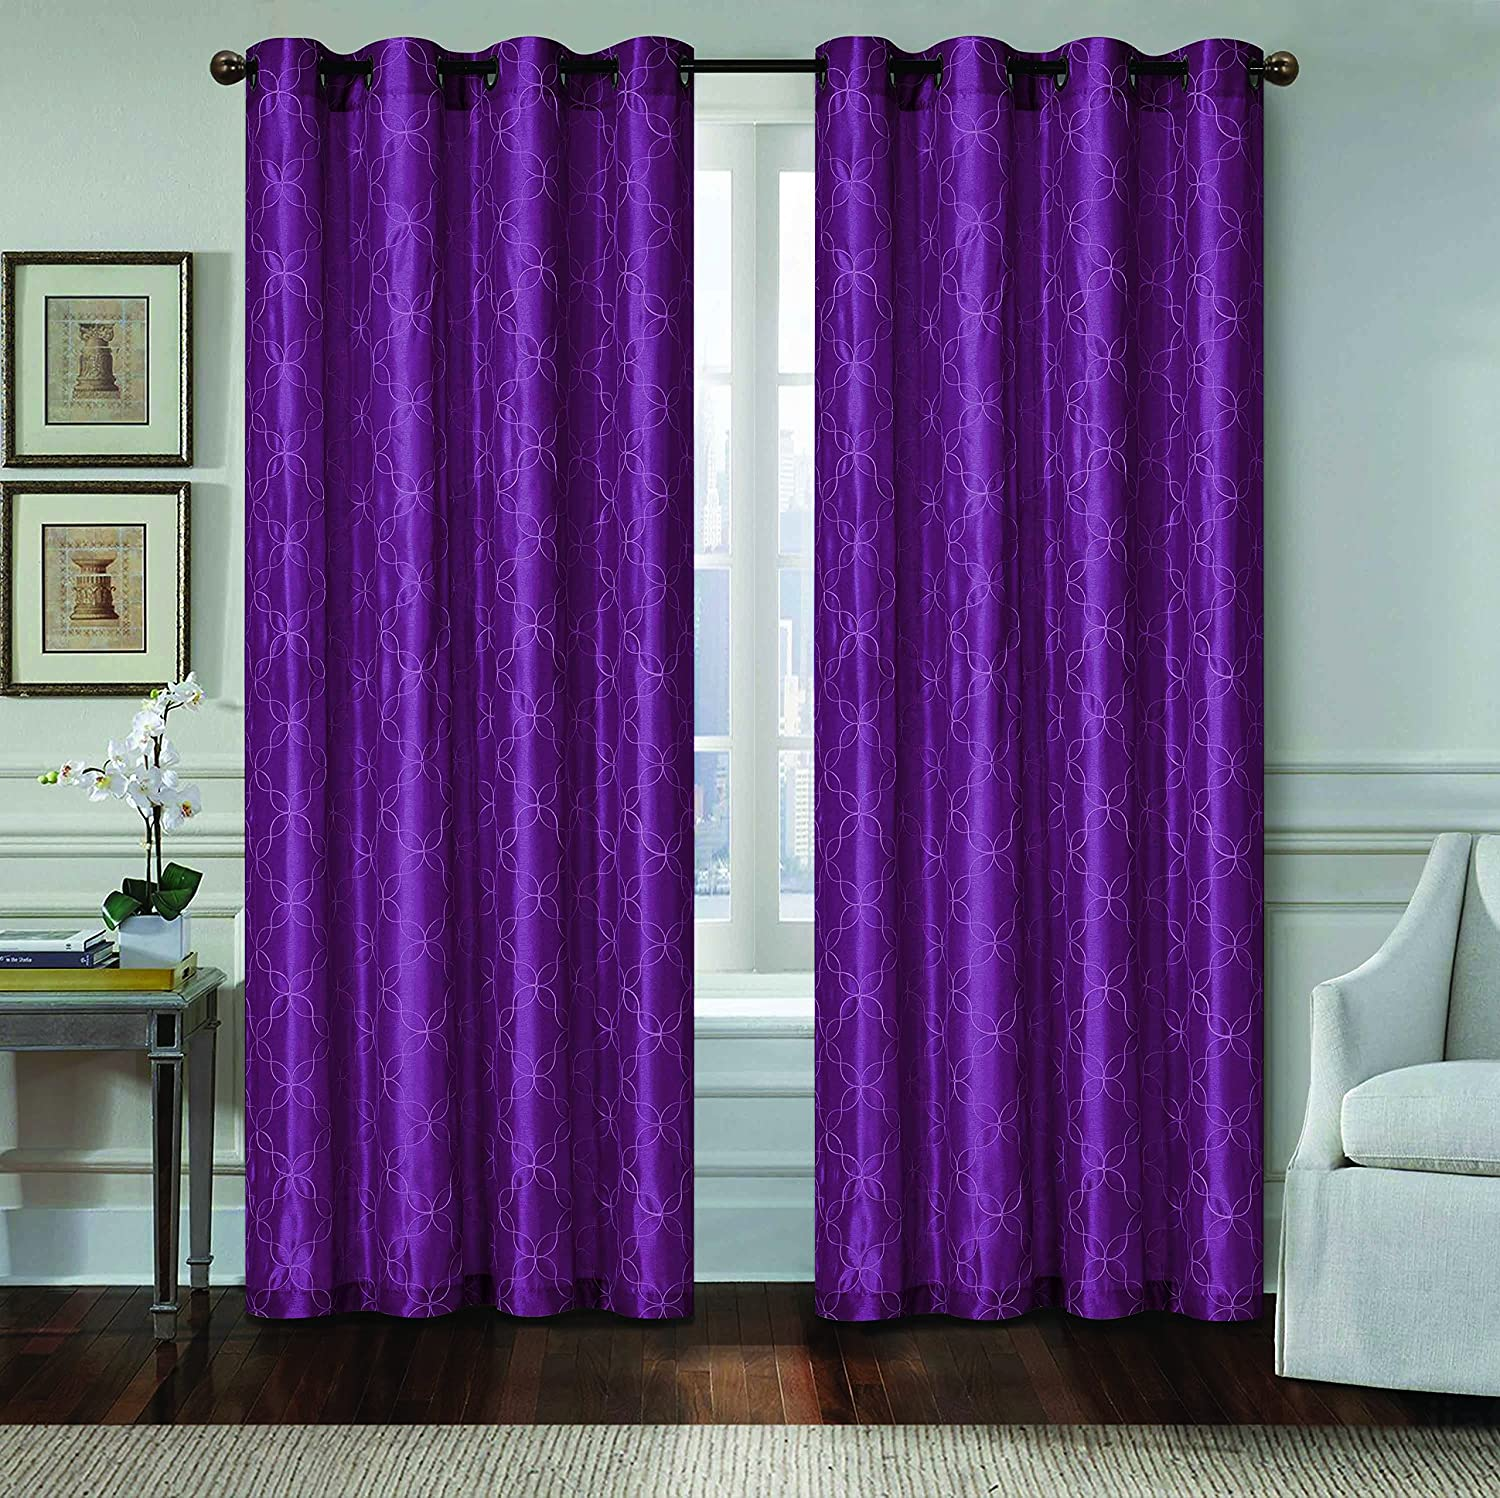 All American Collection New 1 Panel Geometric Design Faux Silk Embroidered Curtain With Grommets